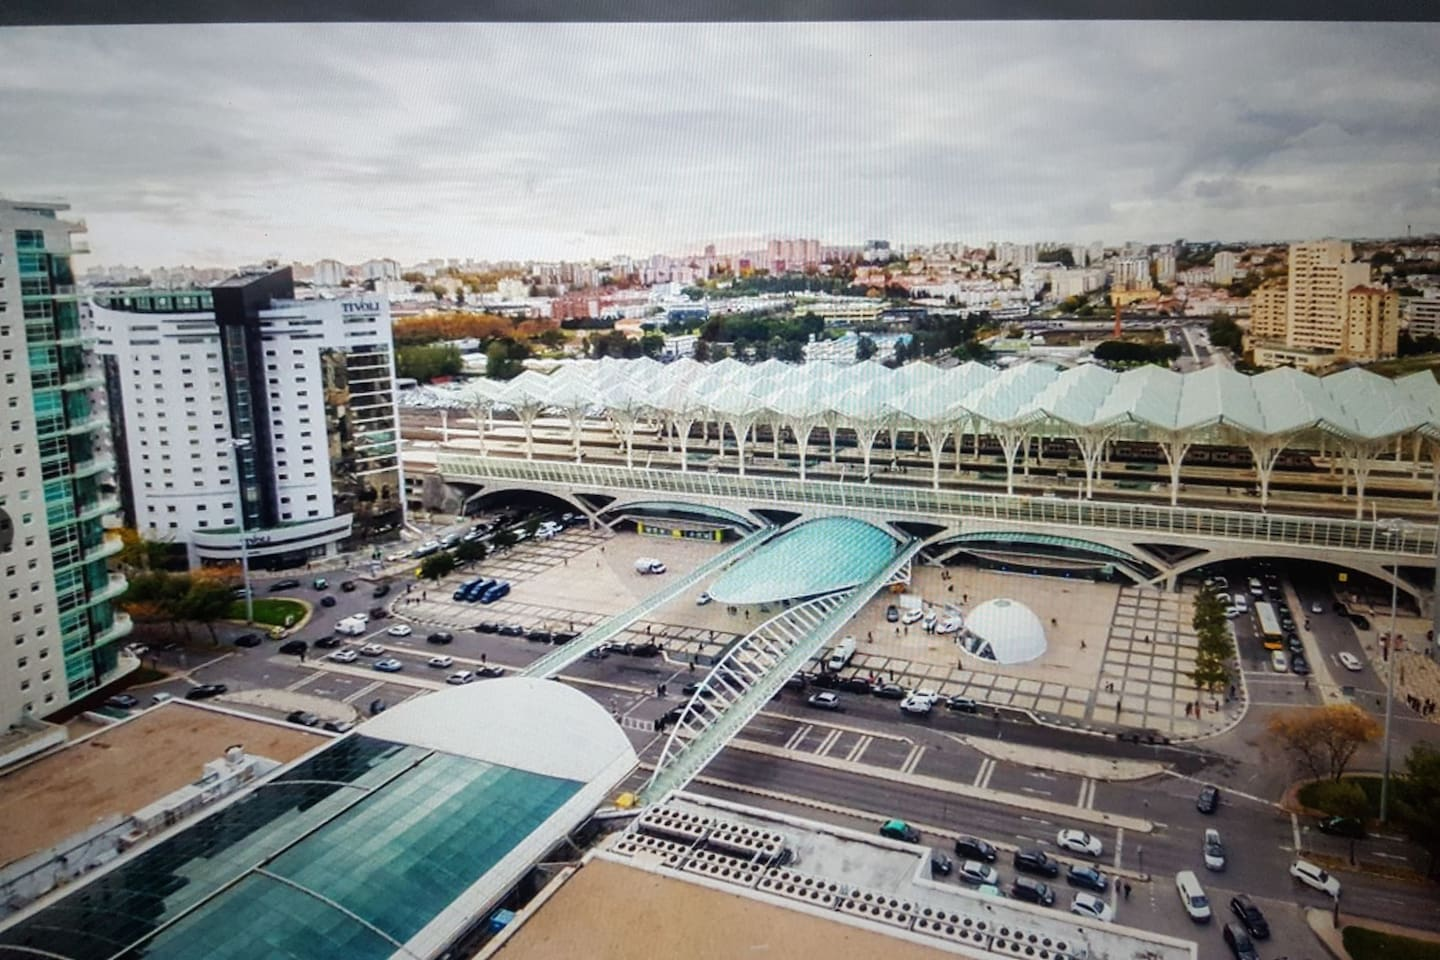 oriente overview ,the new and premium area of lisbon city,just 5min walking